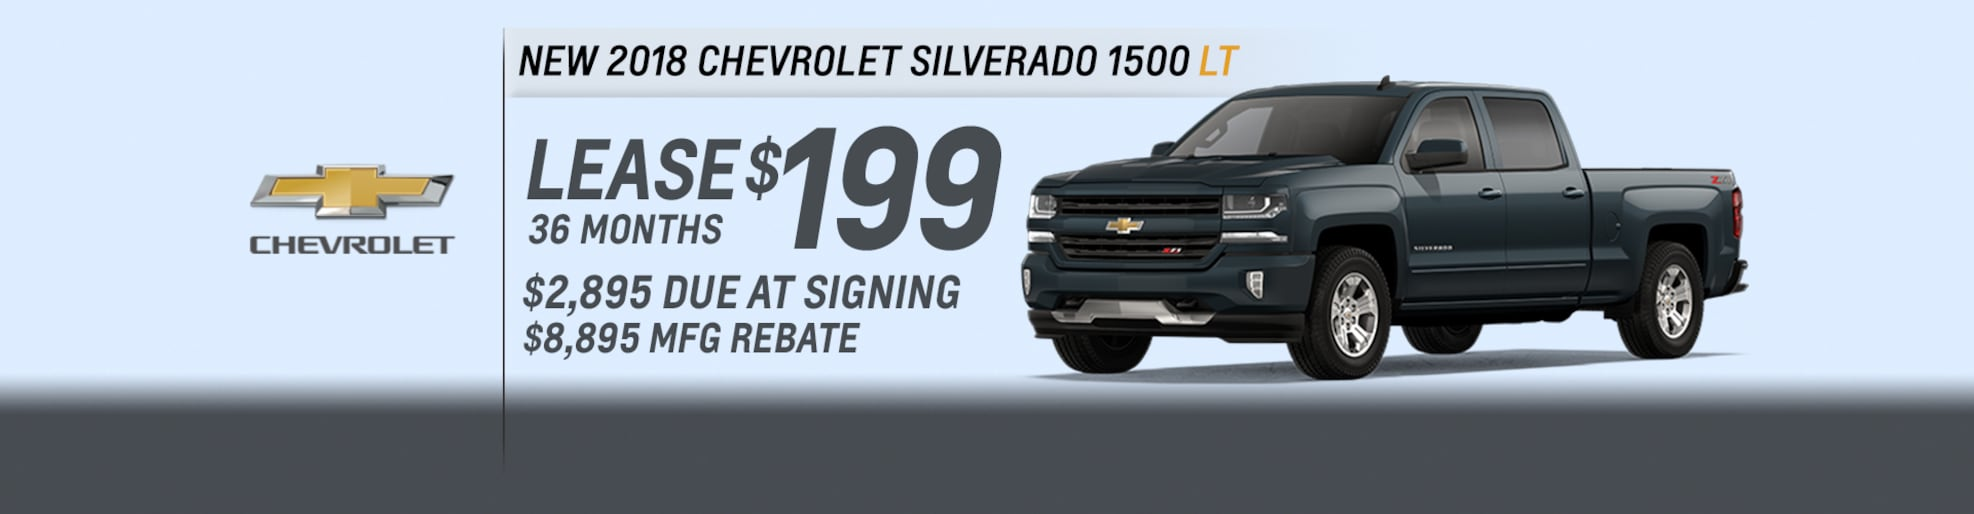 Jeff Wyler Chevrolet Dealerships | New and Used Chevrolet ...